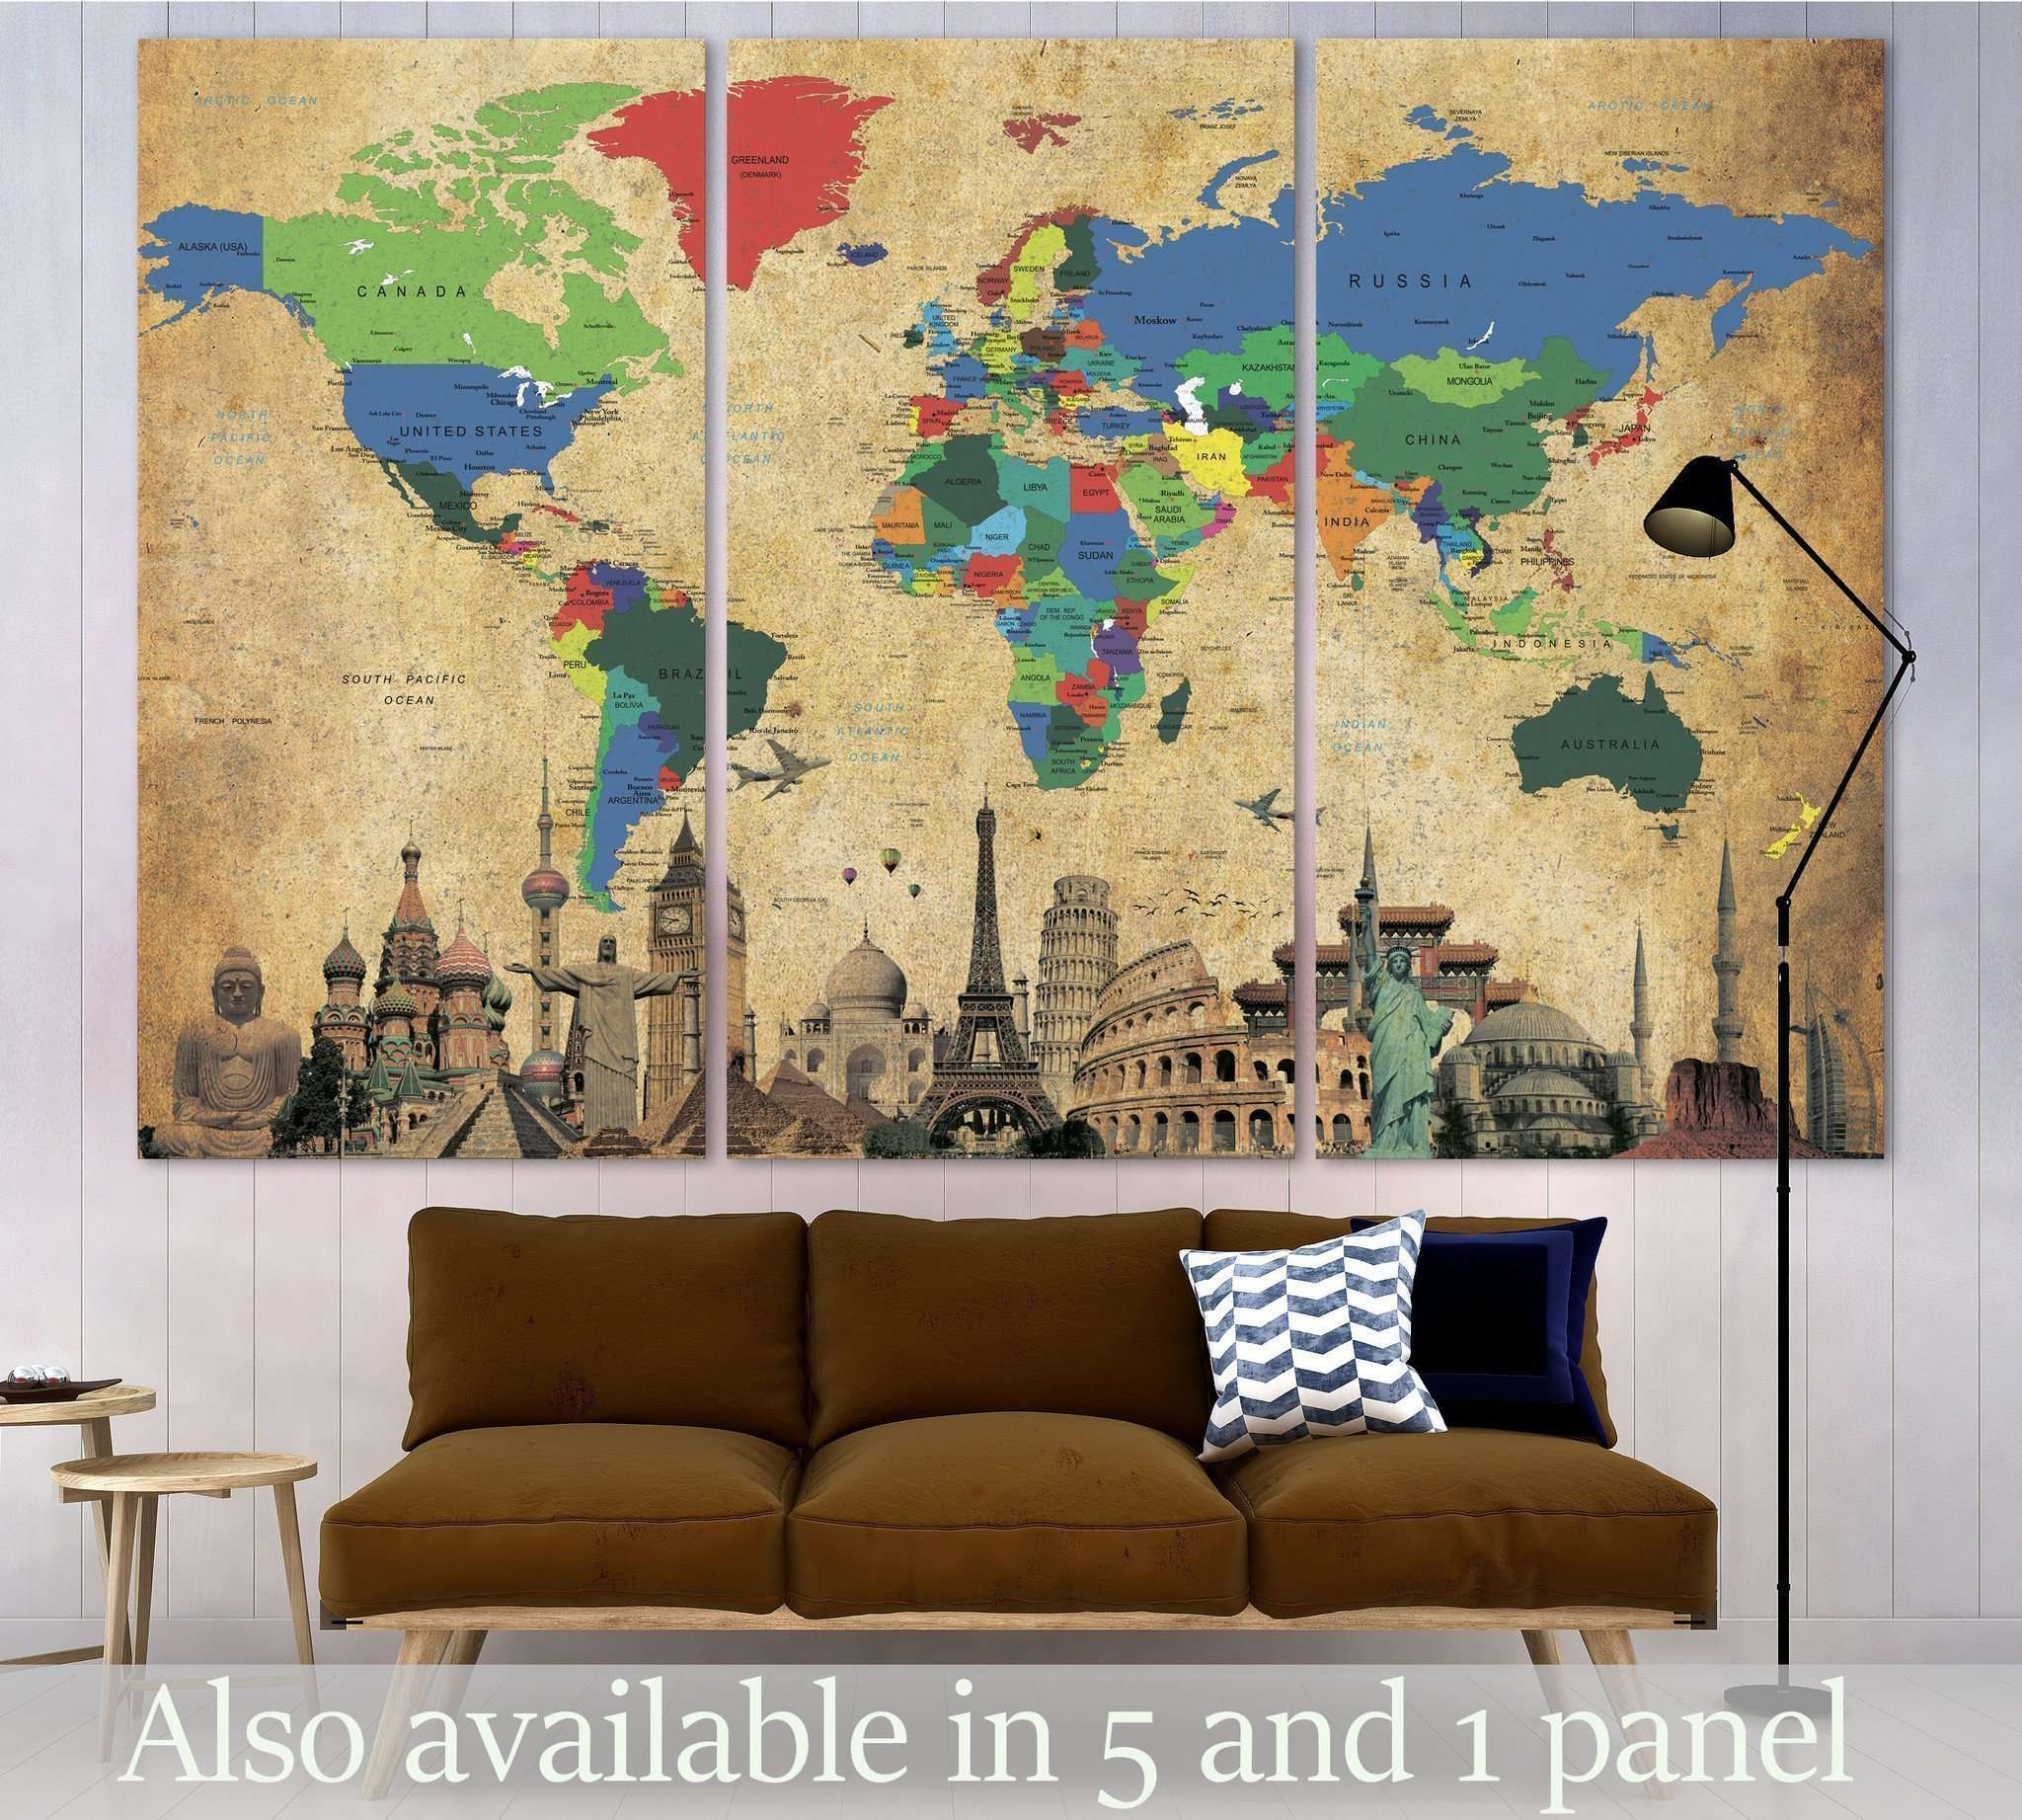 LIVING ROOM WALL ART at Zellart Canvas Arts